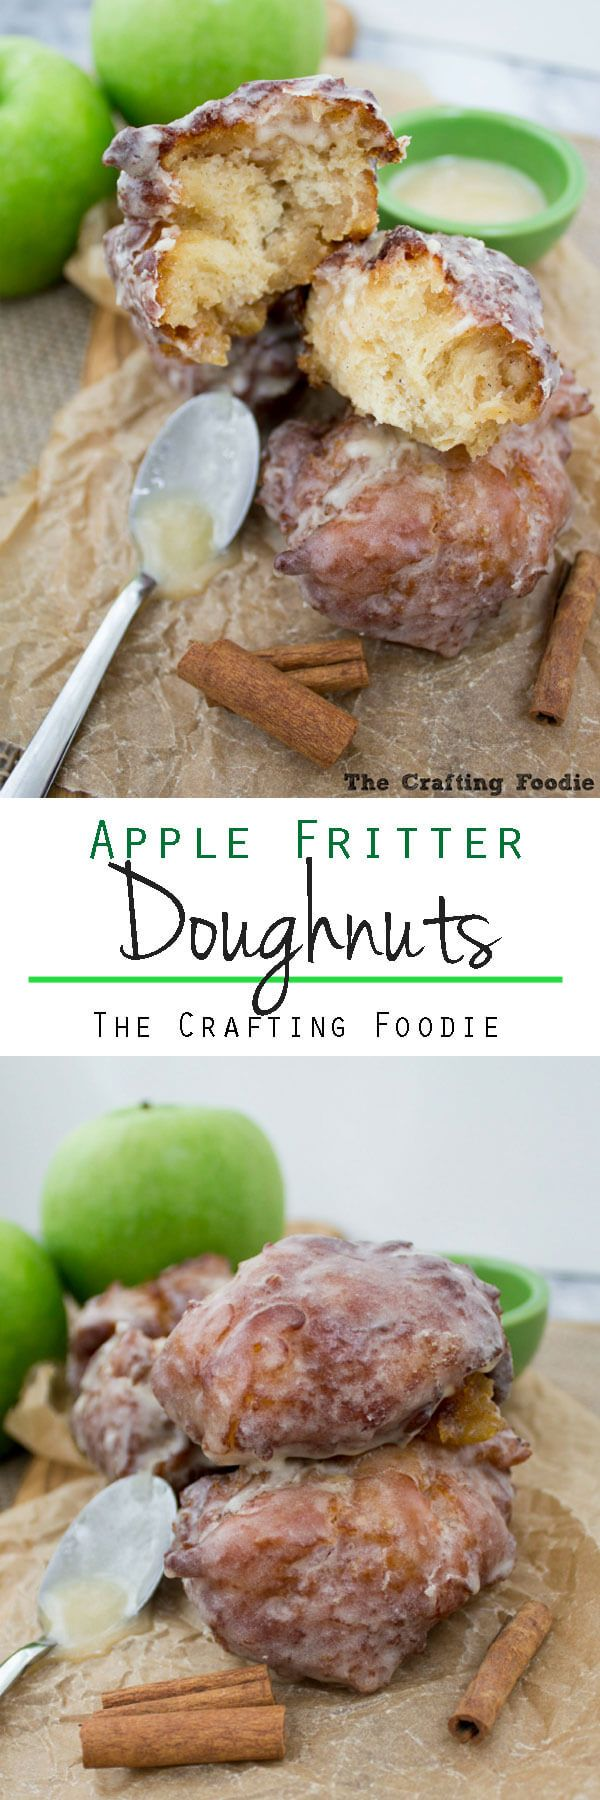 These Apple Fritters Doughnuts are crisp on the outside, light and fluffy on the inside and enrobed in a thick, vanilla bean glaze. They're made with apple cider and are packed with chopped apples giving them a delicious, fresh apple flavor.